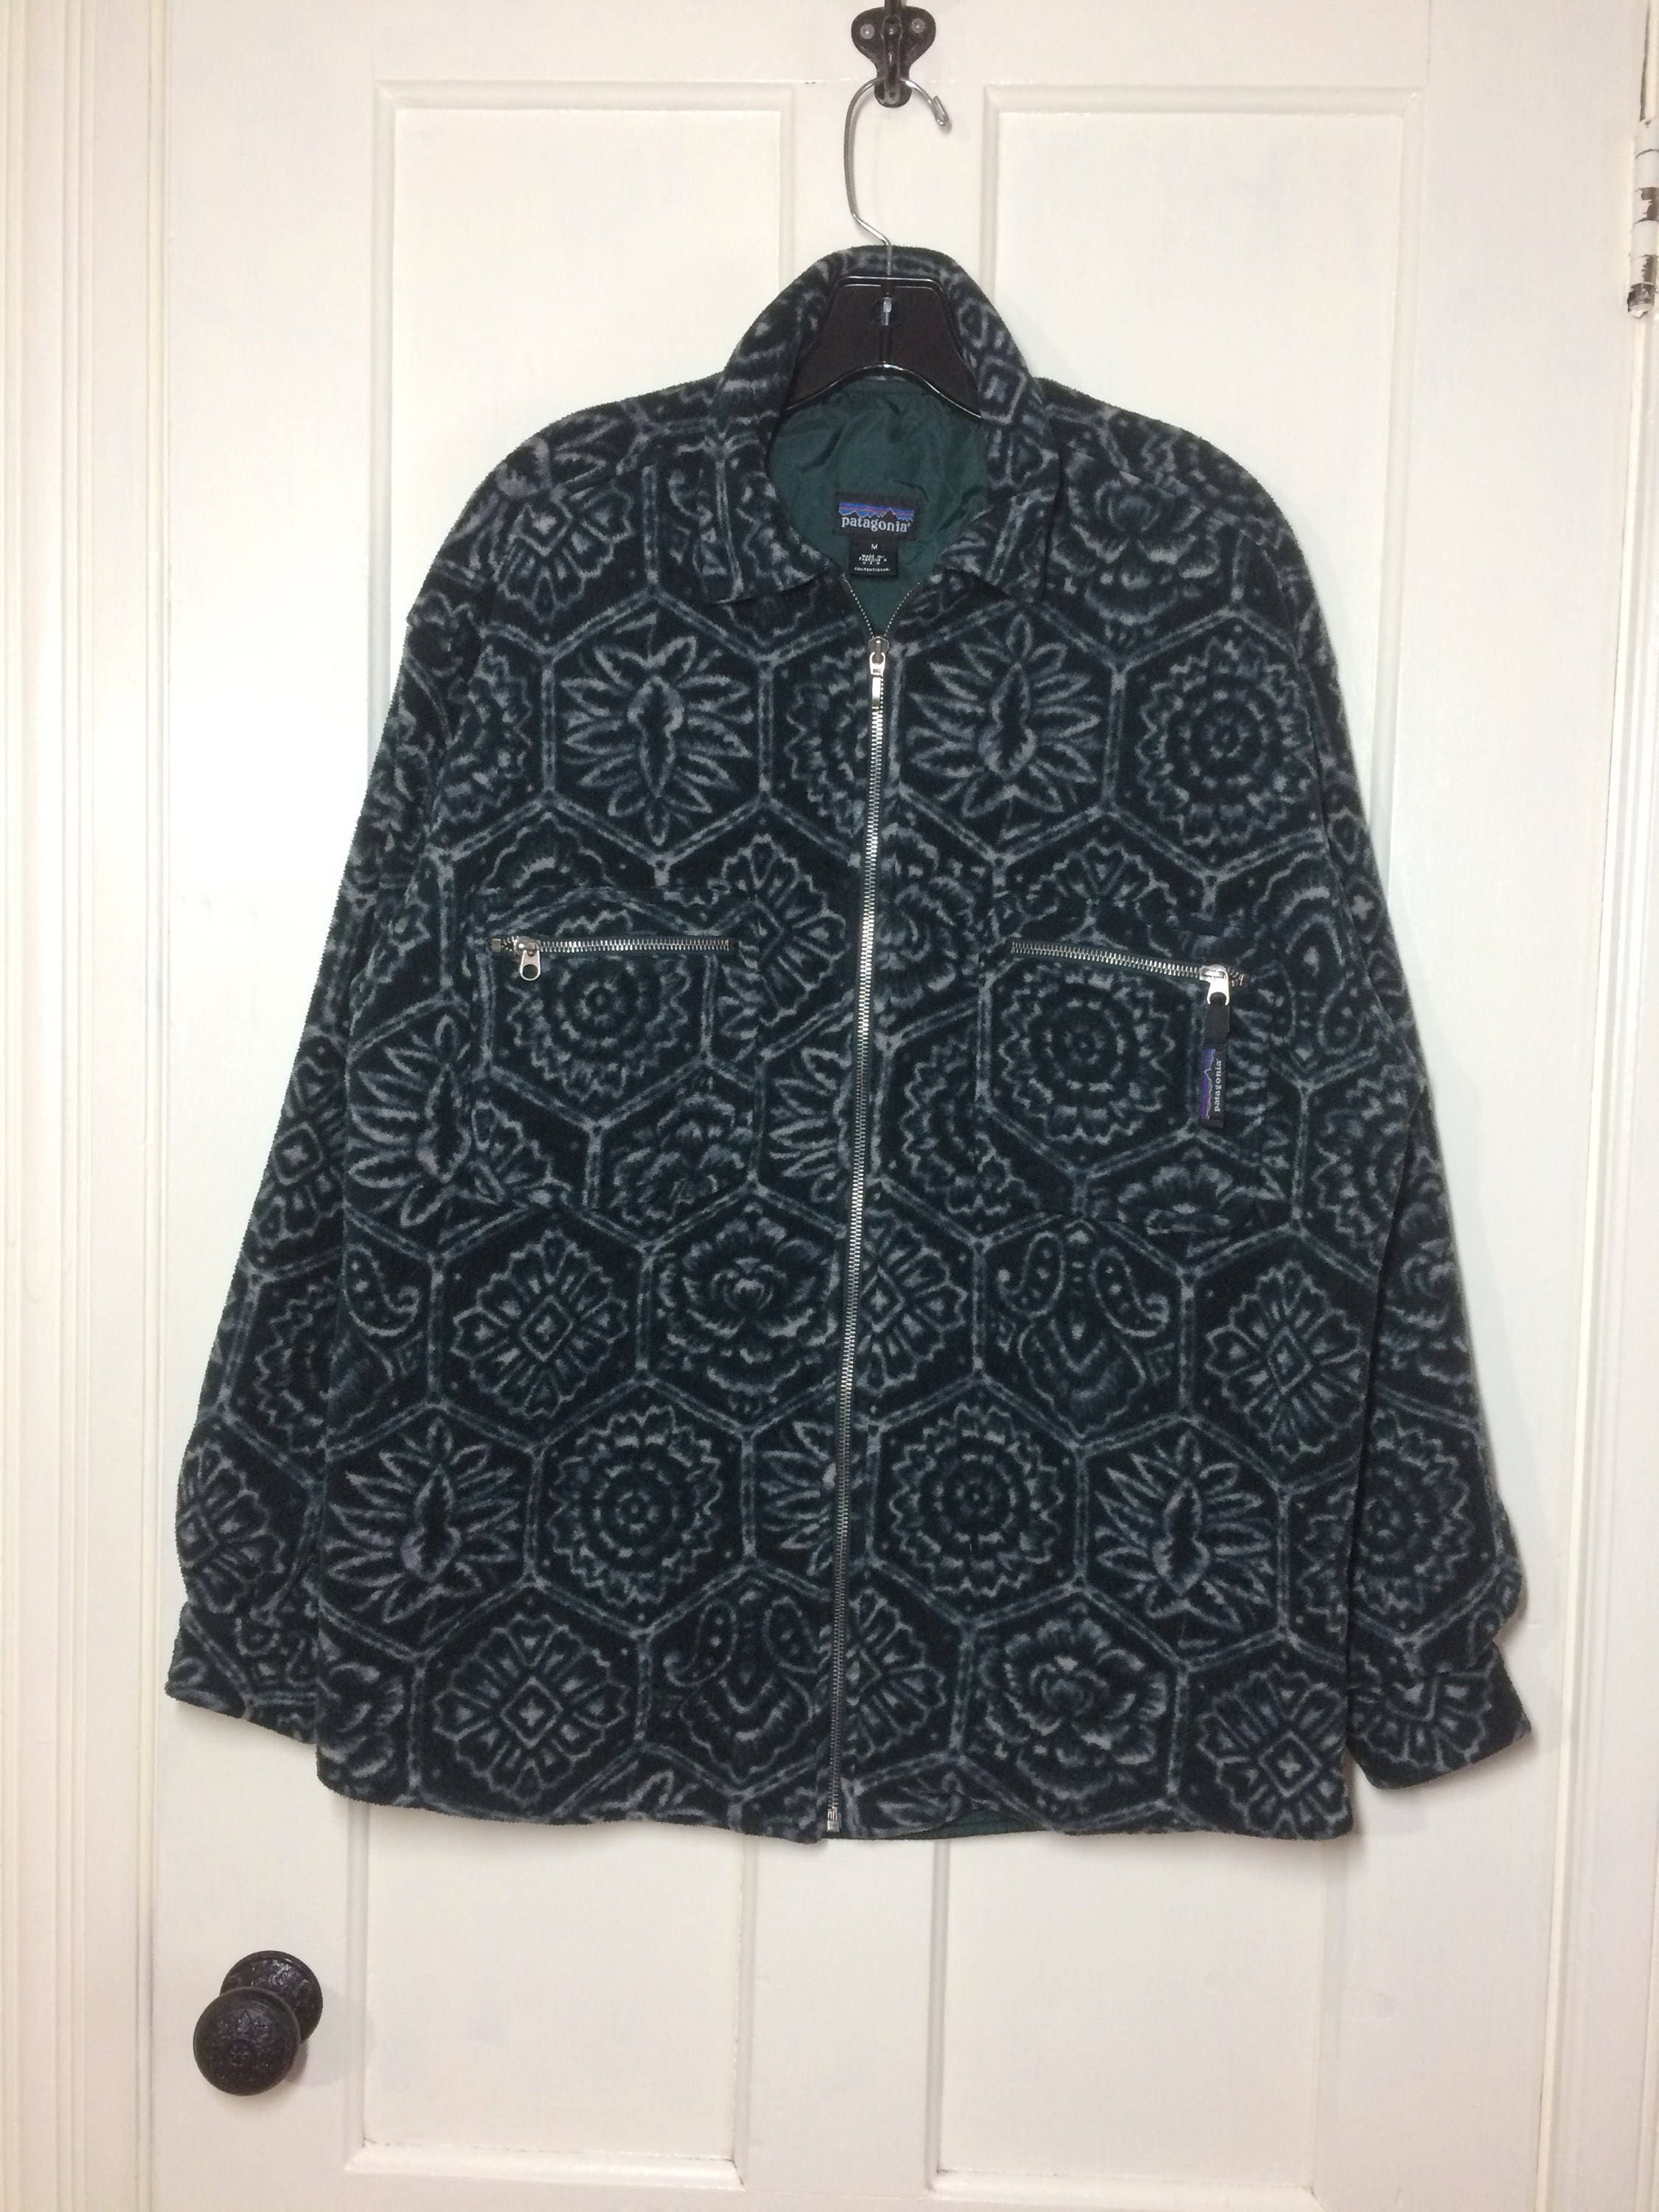 Patterned Patagonia Fleece Awesome Inspiration